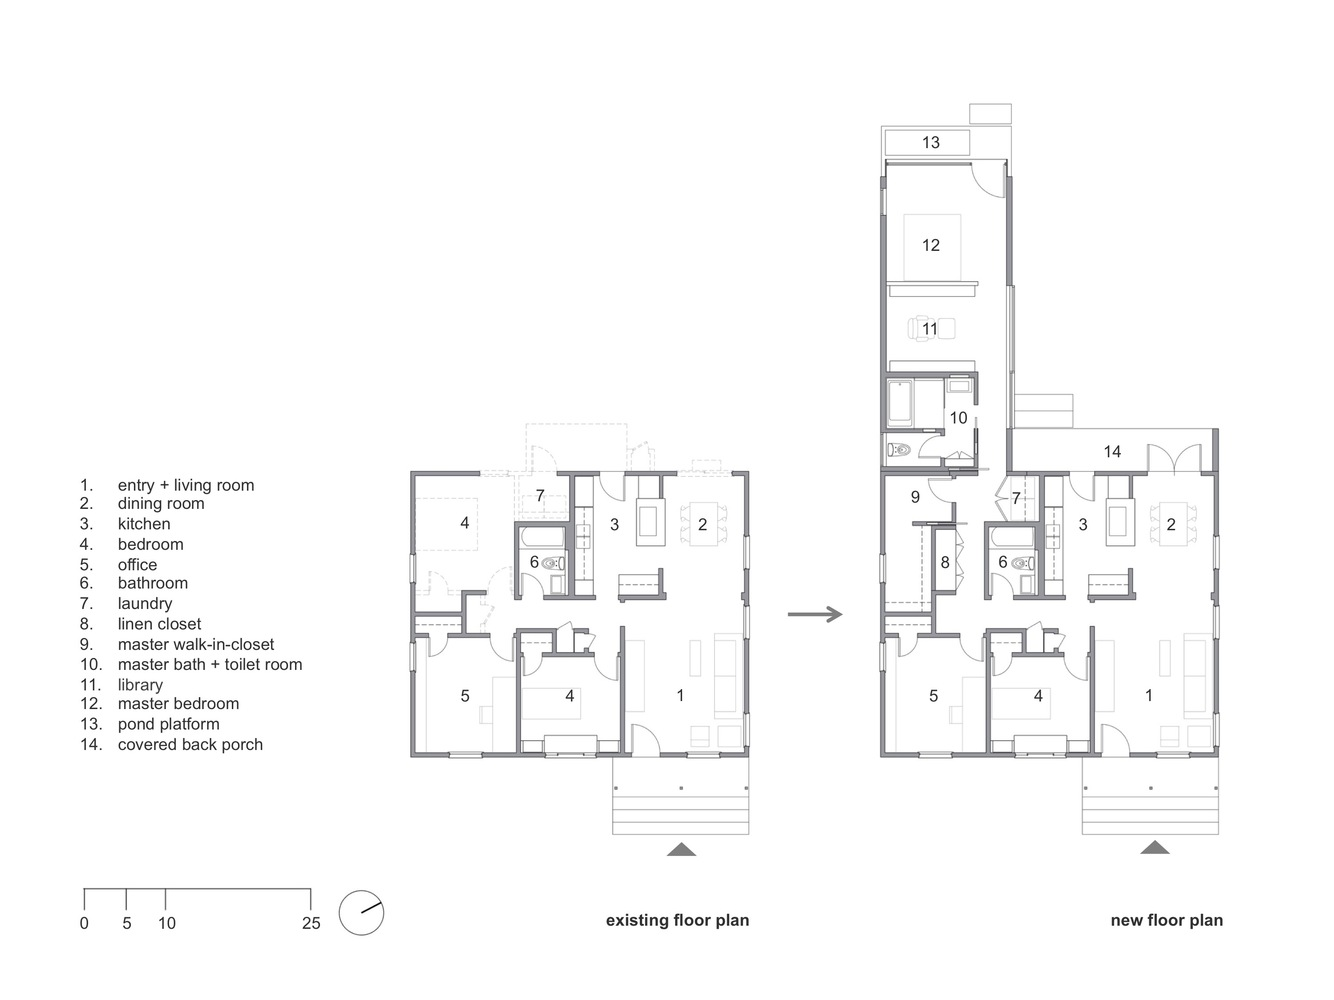 Gallery of Rear Window House / Edward Ogosta Architecture - 19 on house plans bunkhouse, house plans in 3d view, house extension plans, house plans with front porches, house floor plans, house plans center kitchen, house plans with a view, house plans with large kitchens, house plans fireplace, house plans with back view, house plans with porte cochere, house plans vaulted ceilings, house plans chairs,